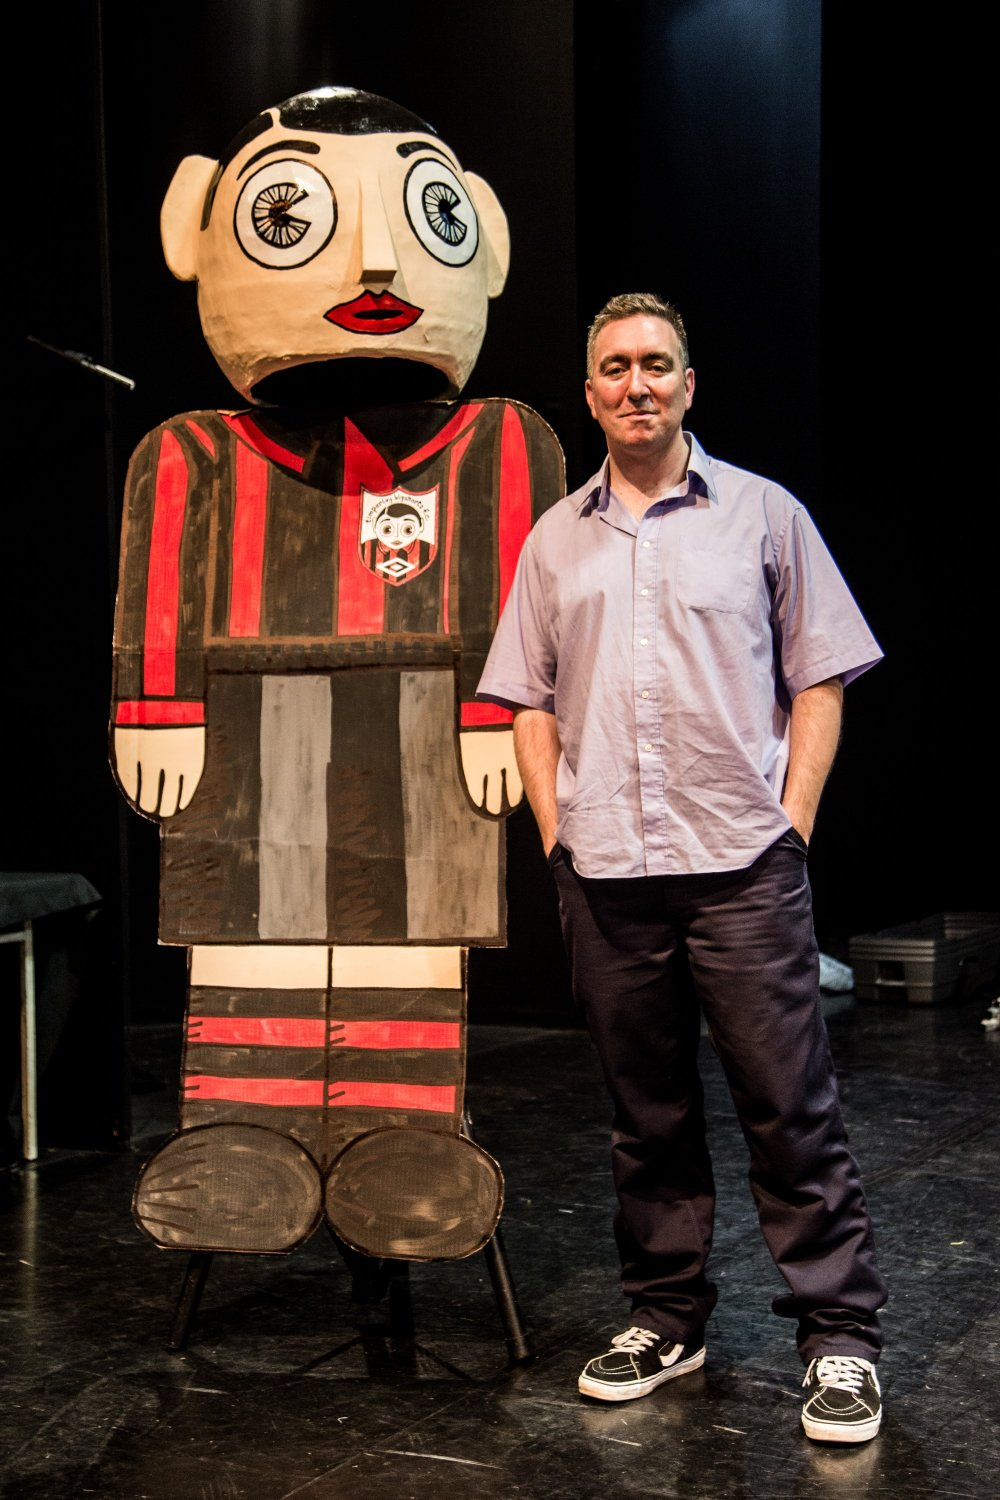 Steve Sullivan with an oversized Little Frank to promote Being Frank: The Chris Sievey Story (2019)